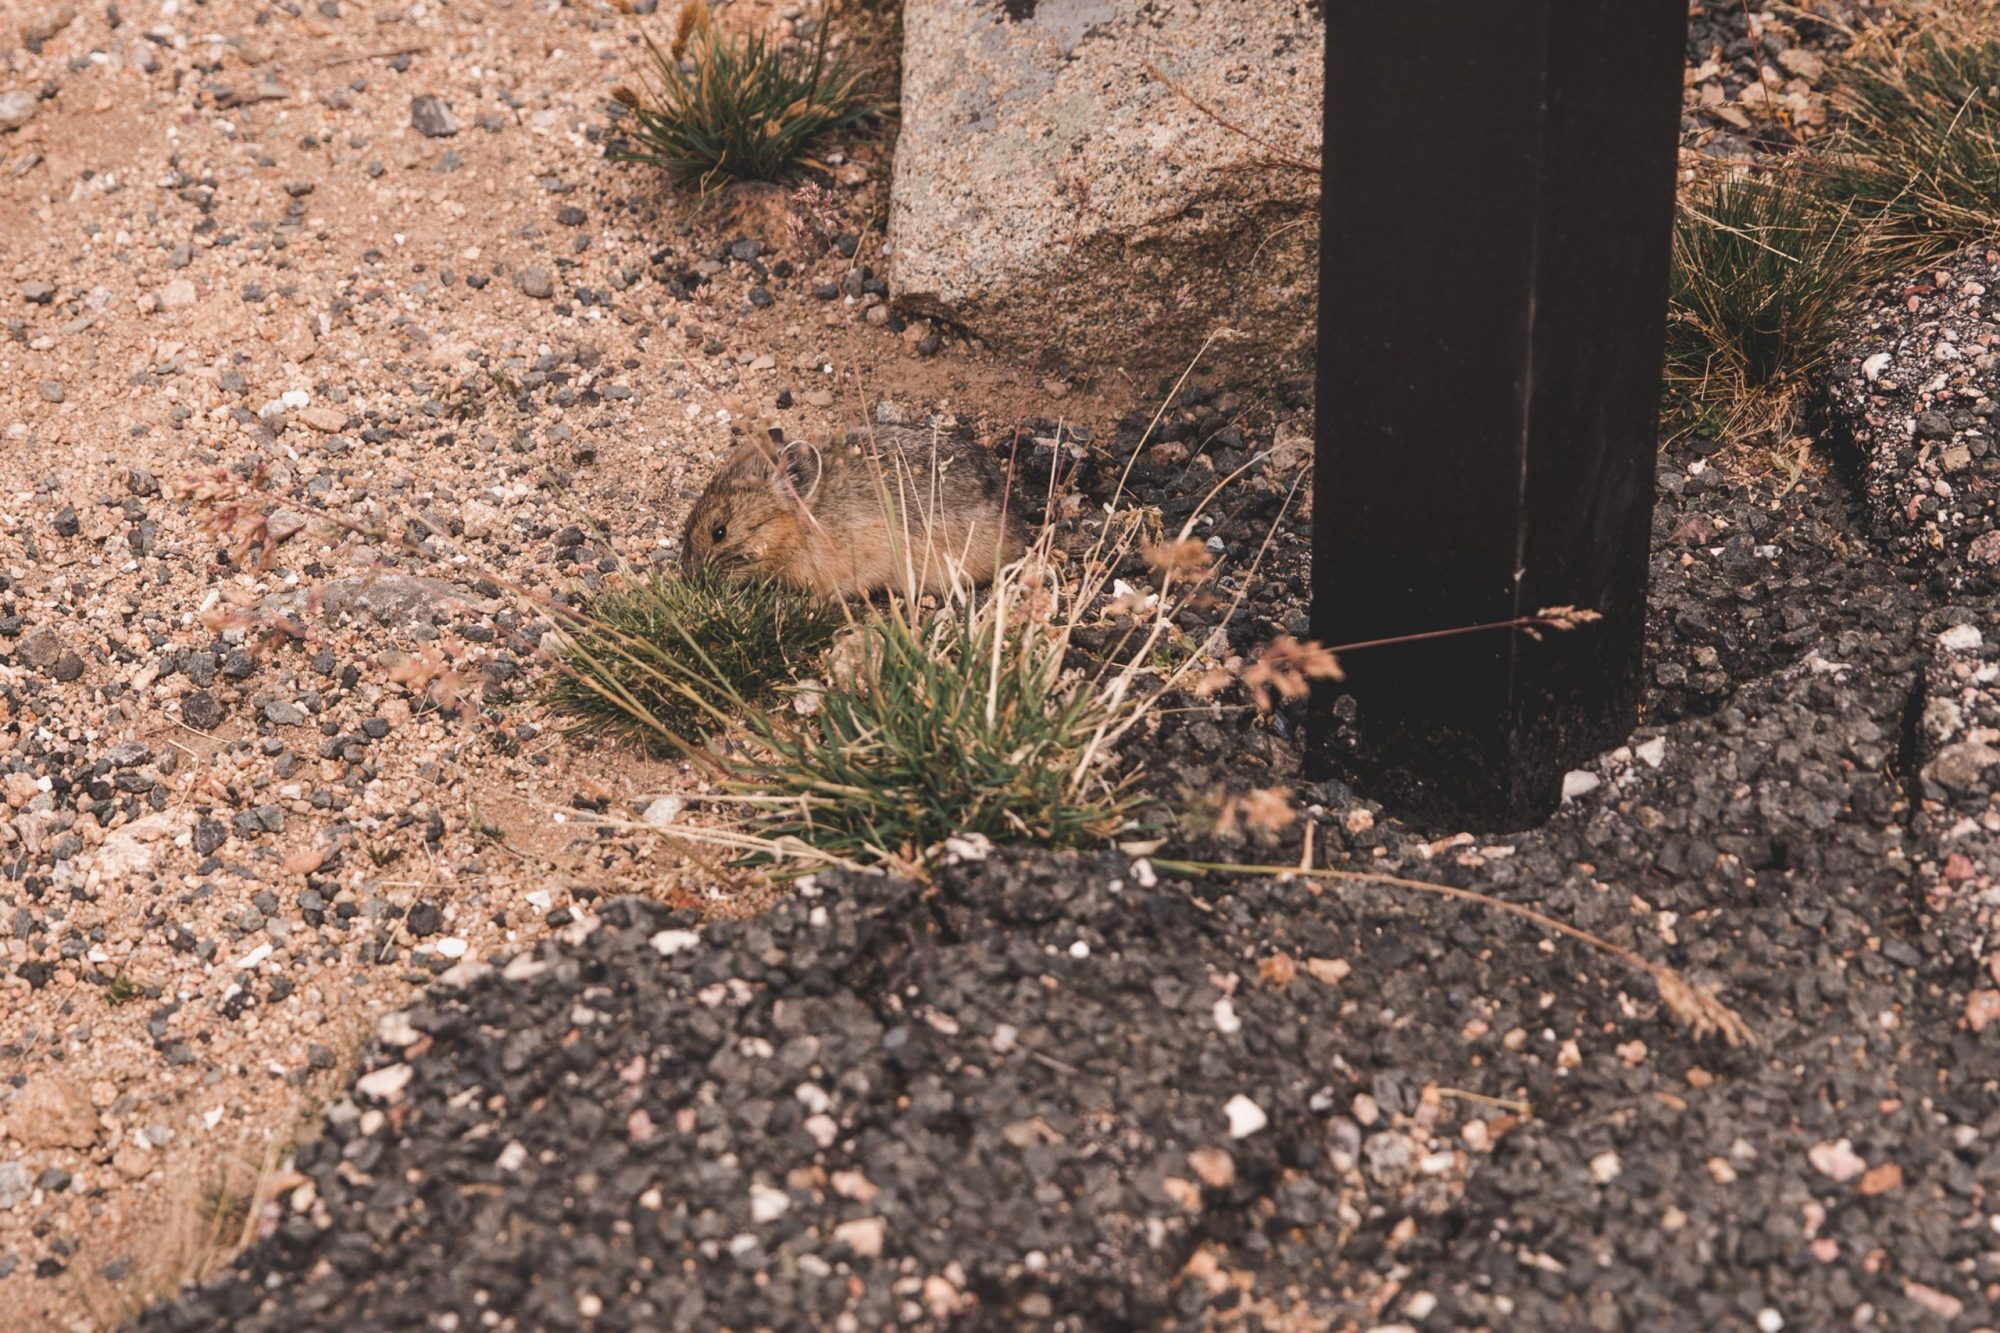 Pika on the Tundra Communities Trail in Rocky Mountain National Park